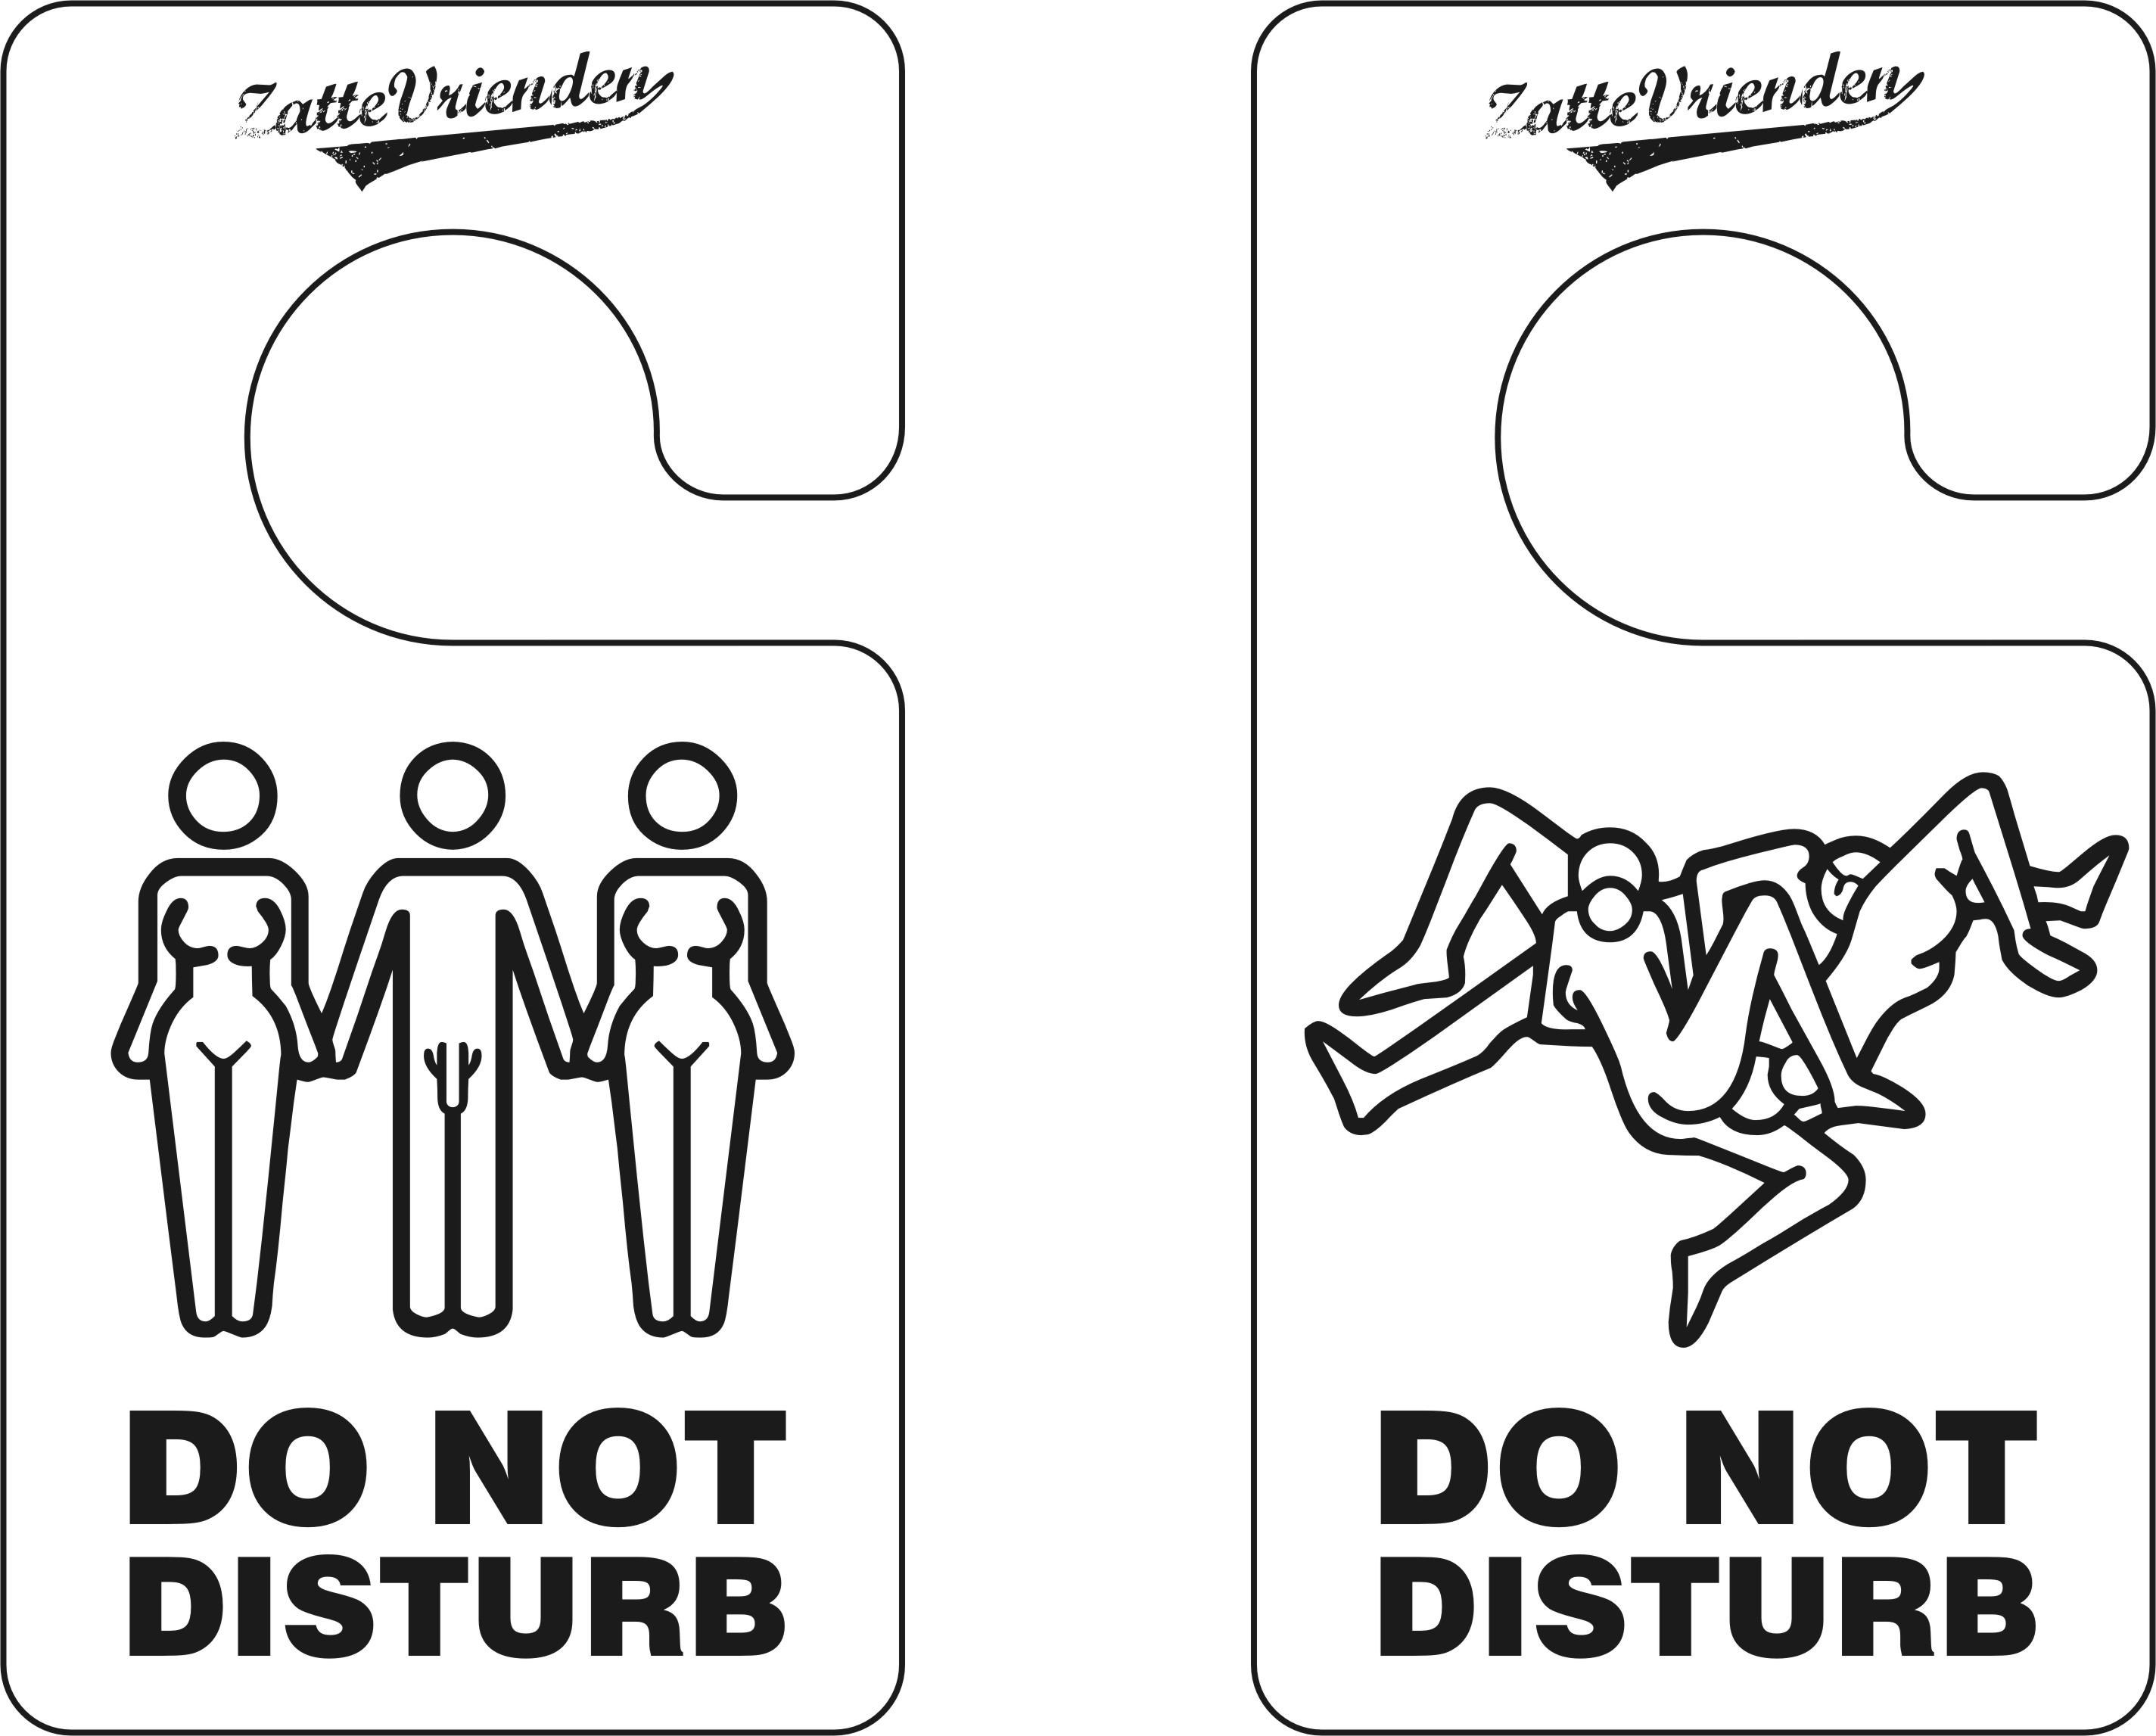 Funny signs: Do not disturb